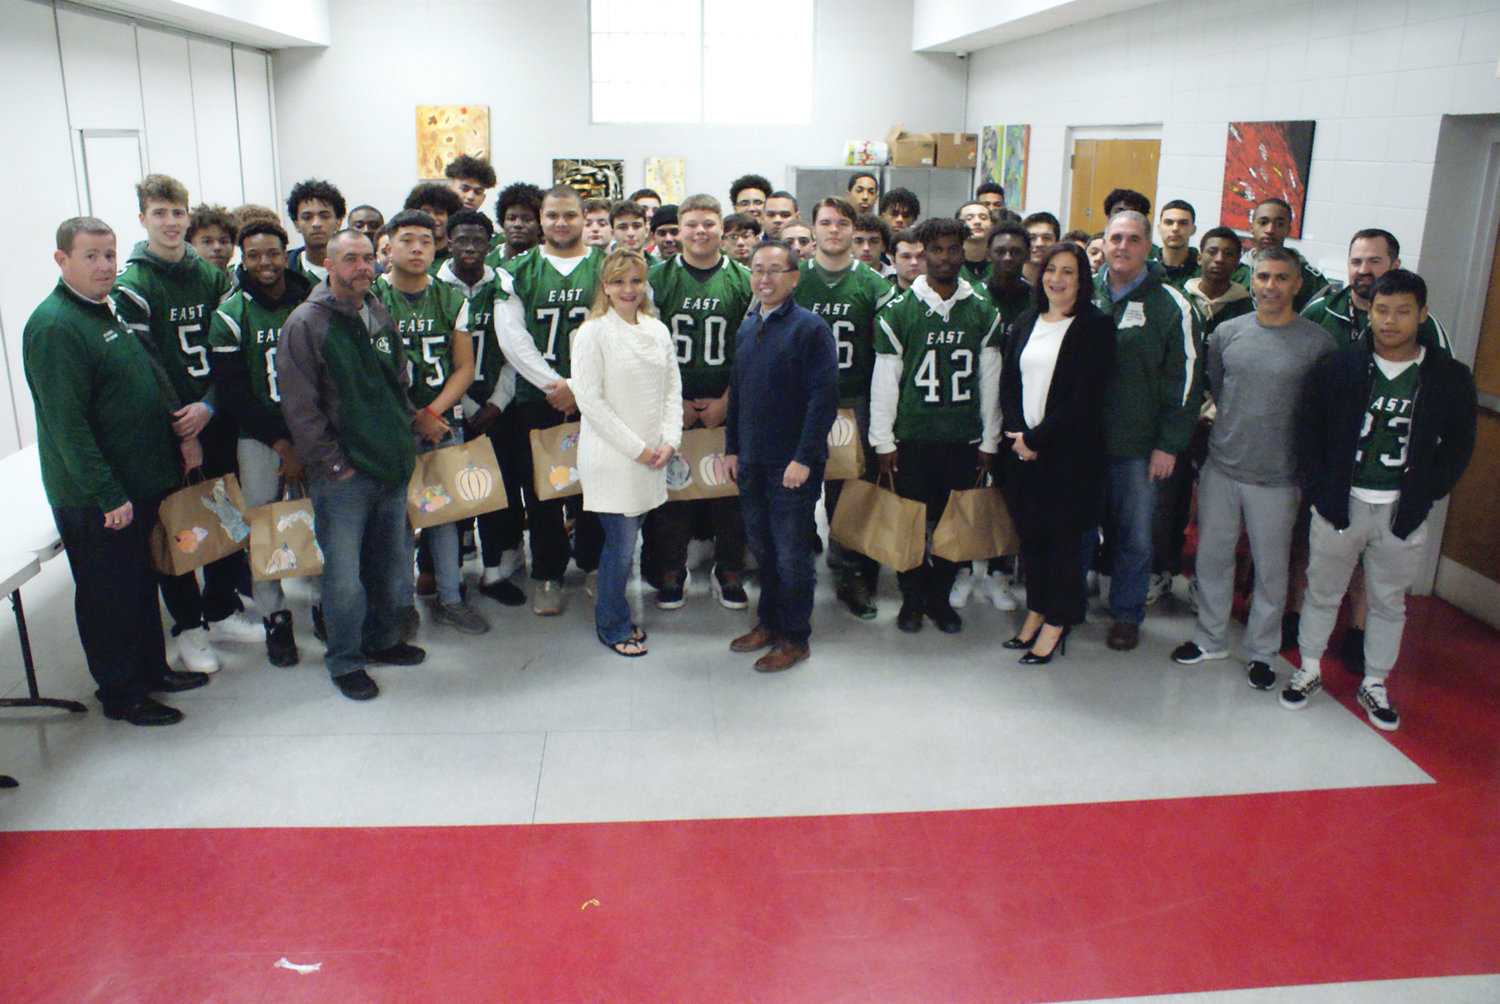 COMMUNITY SPIRIT: Mayor Allan Fung and his wife, Barbara Ann Fenton-Fung, pose with members of the football team from Cranston High School East before they headed out to deliver Thanksgiving meals in the community. The two teams went on to play in the annual Thanksgiving matchup, with West winning the battle 27-0.